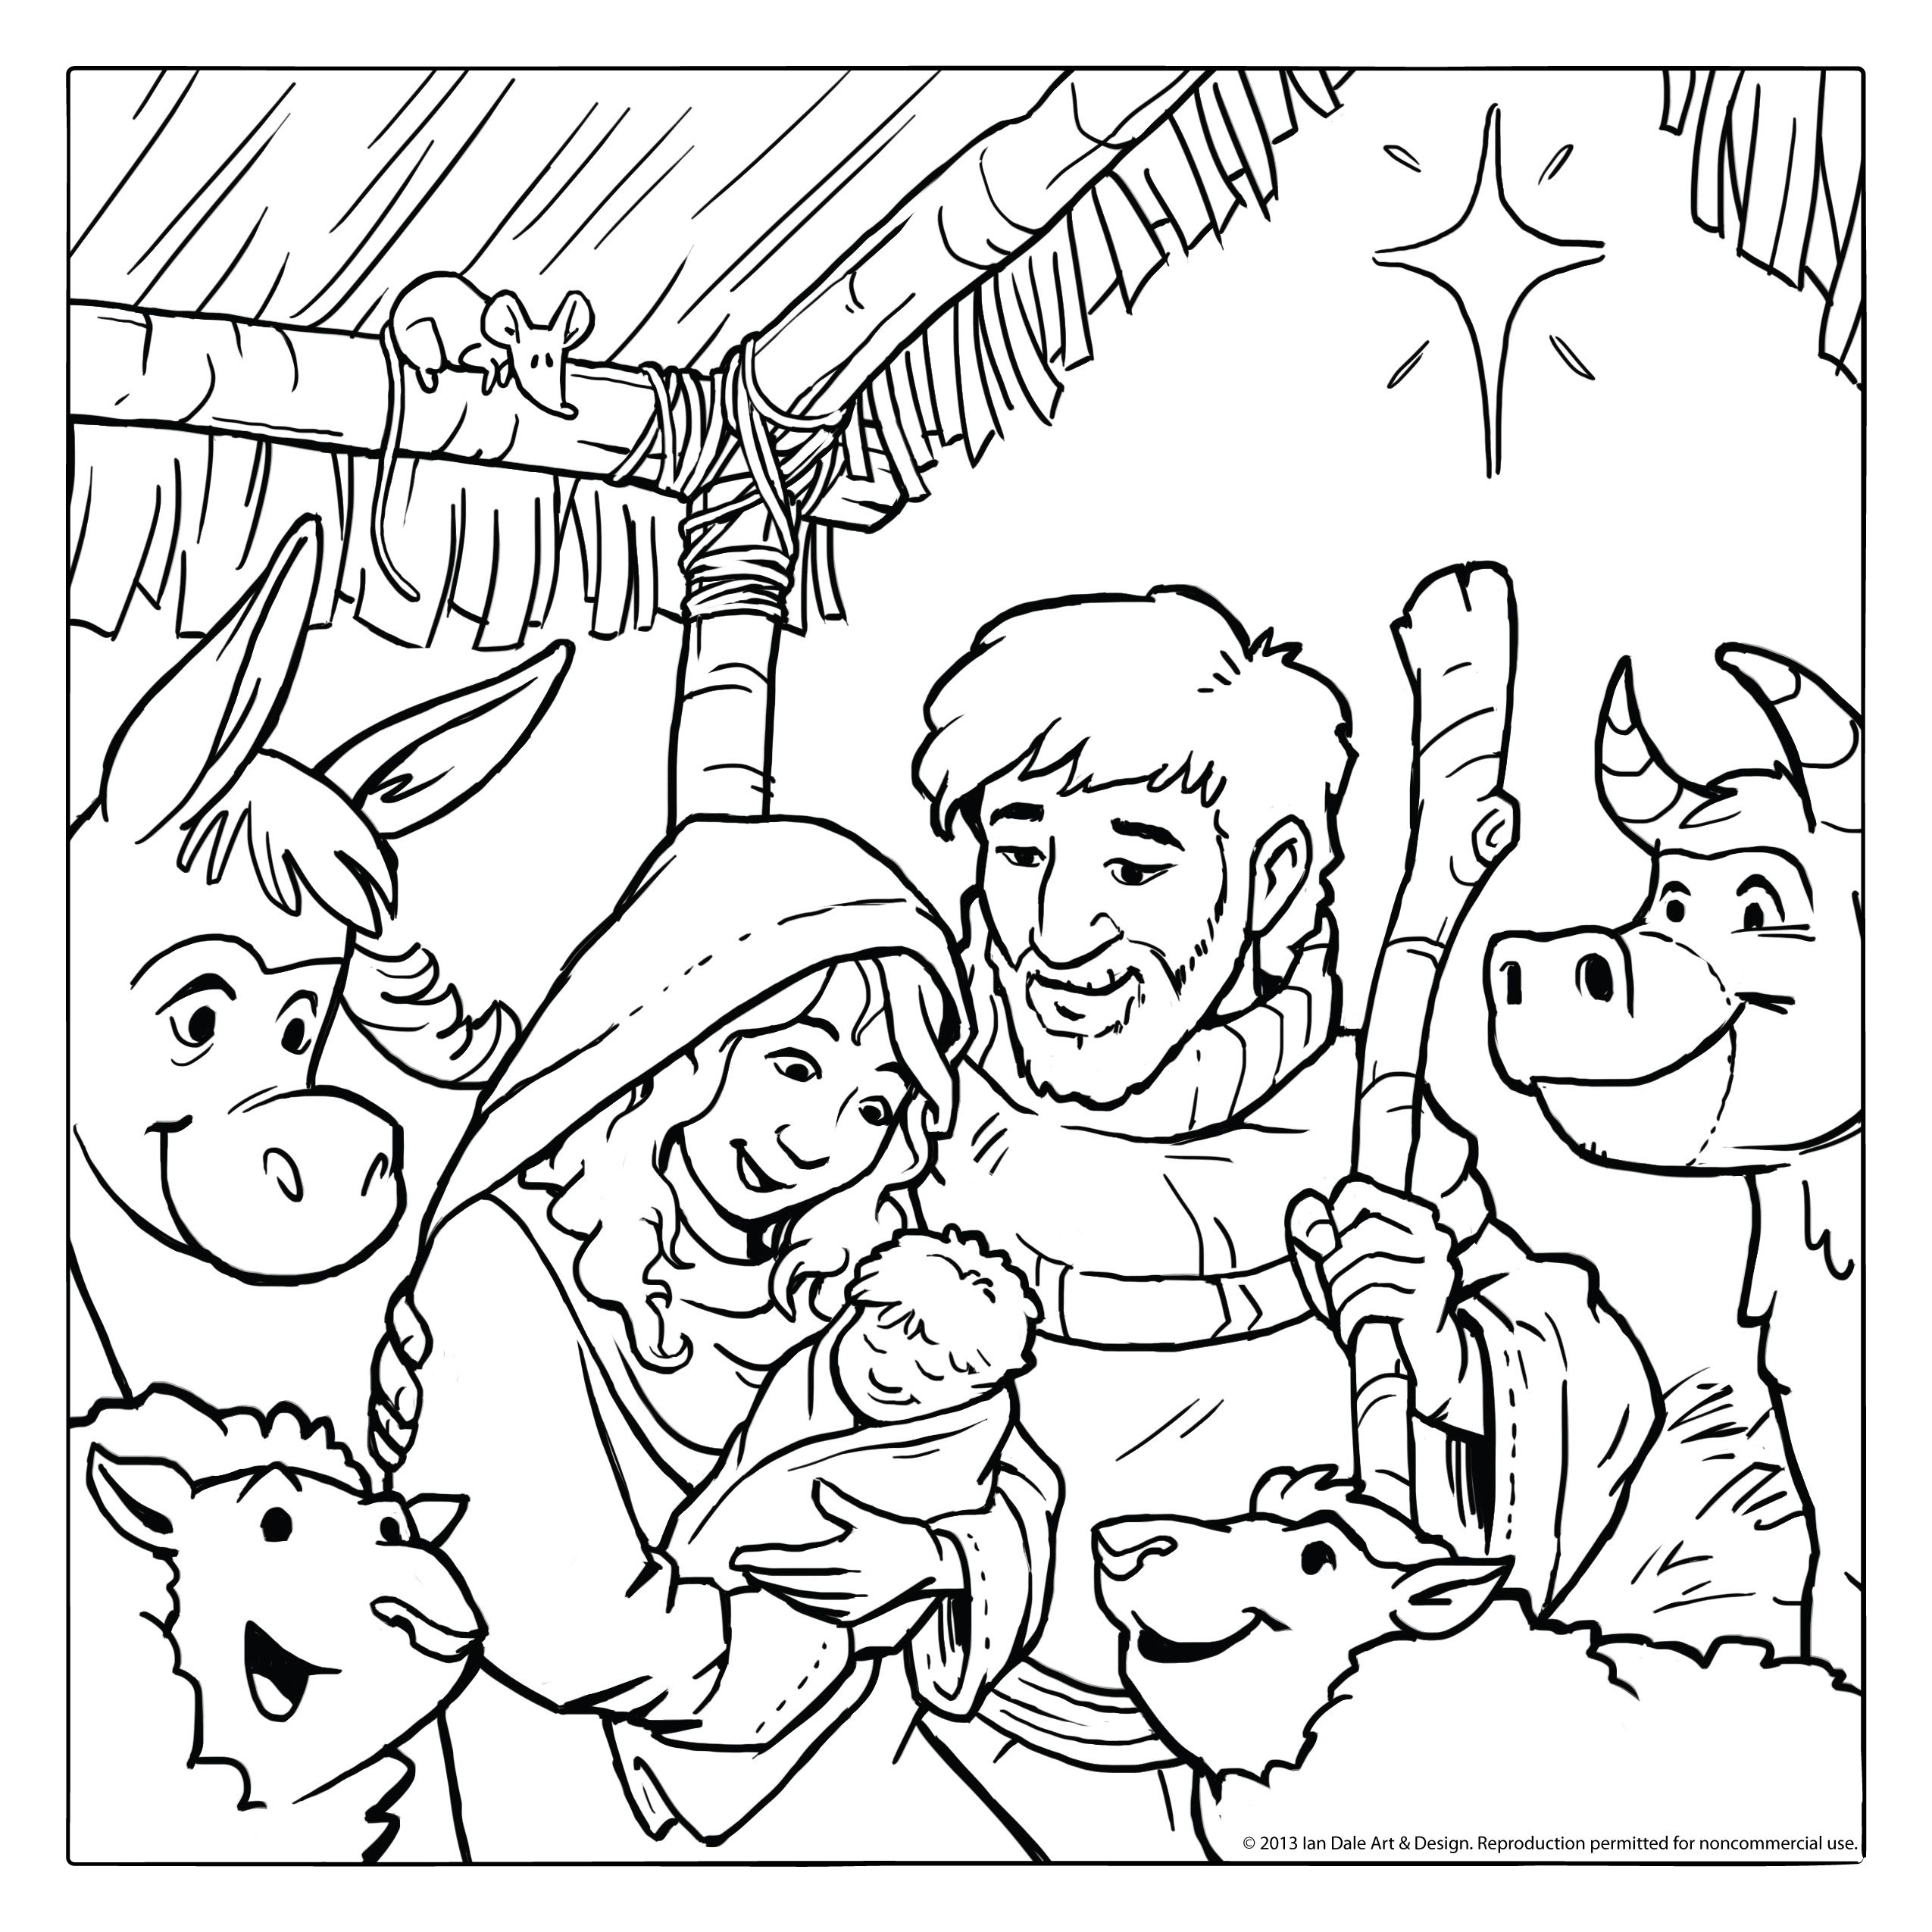 nativity coloring page - Nativity Character Coloring Pages